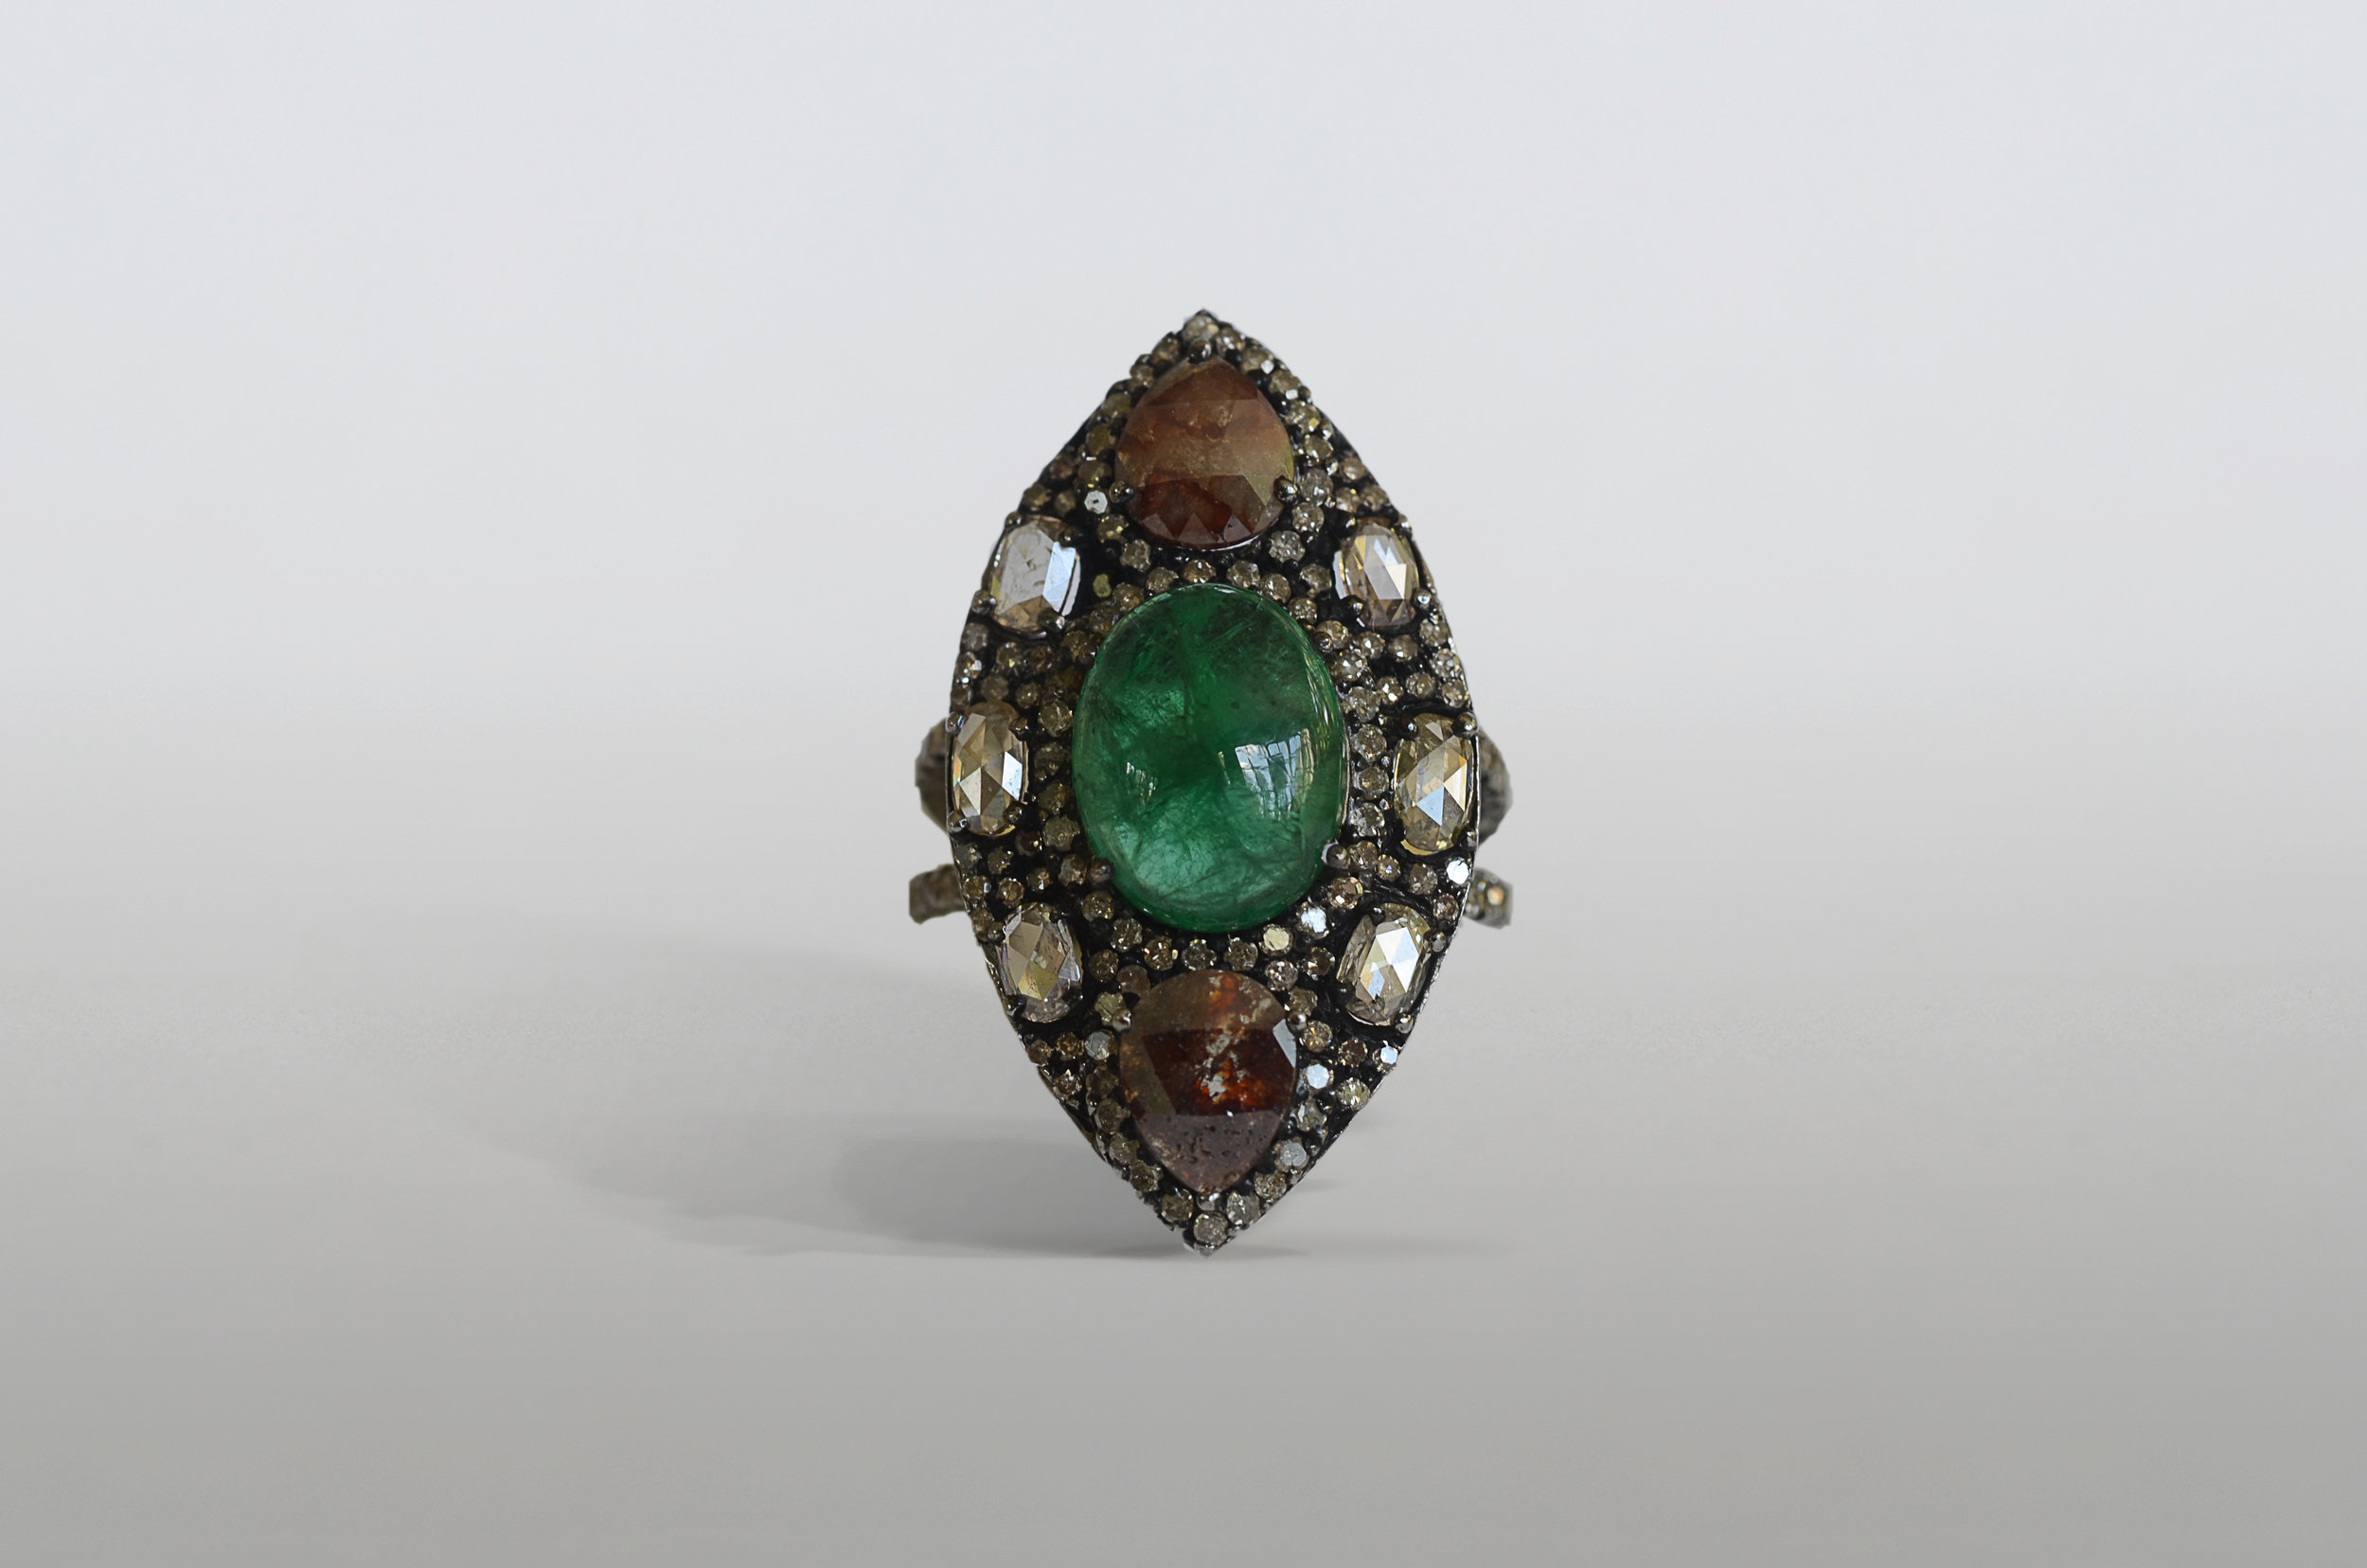 Approximately 4.0 Carat Cabochon Emerald with 3.43 Carat Brown and White Diamonds set in Sterling Silver and 18kt Yellow Gold